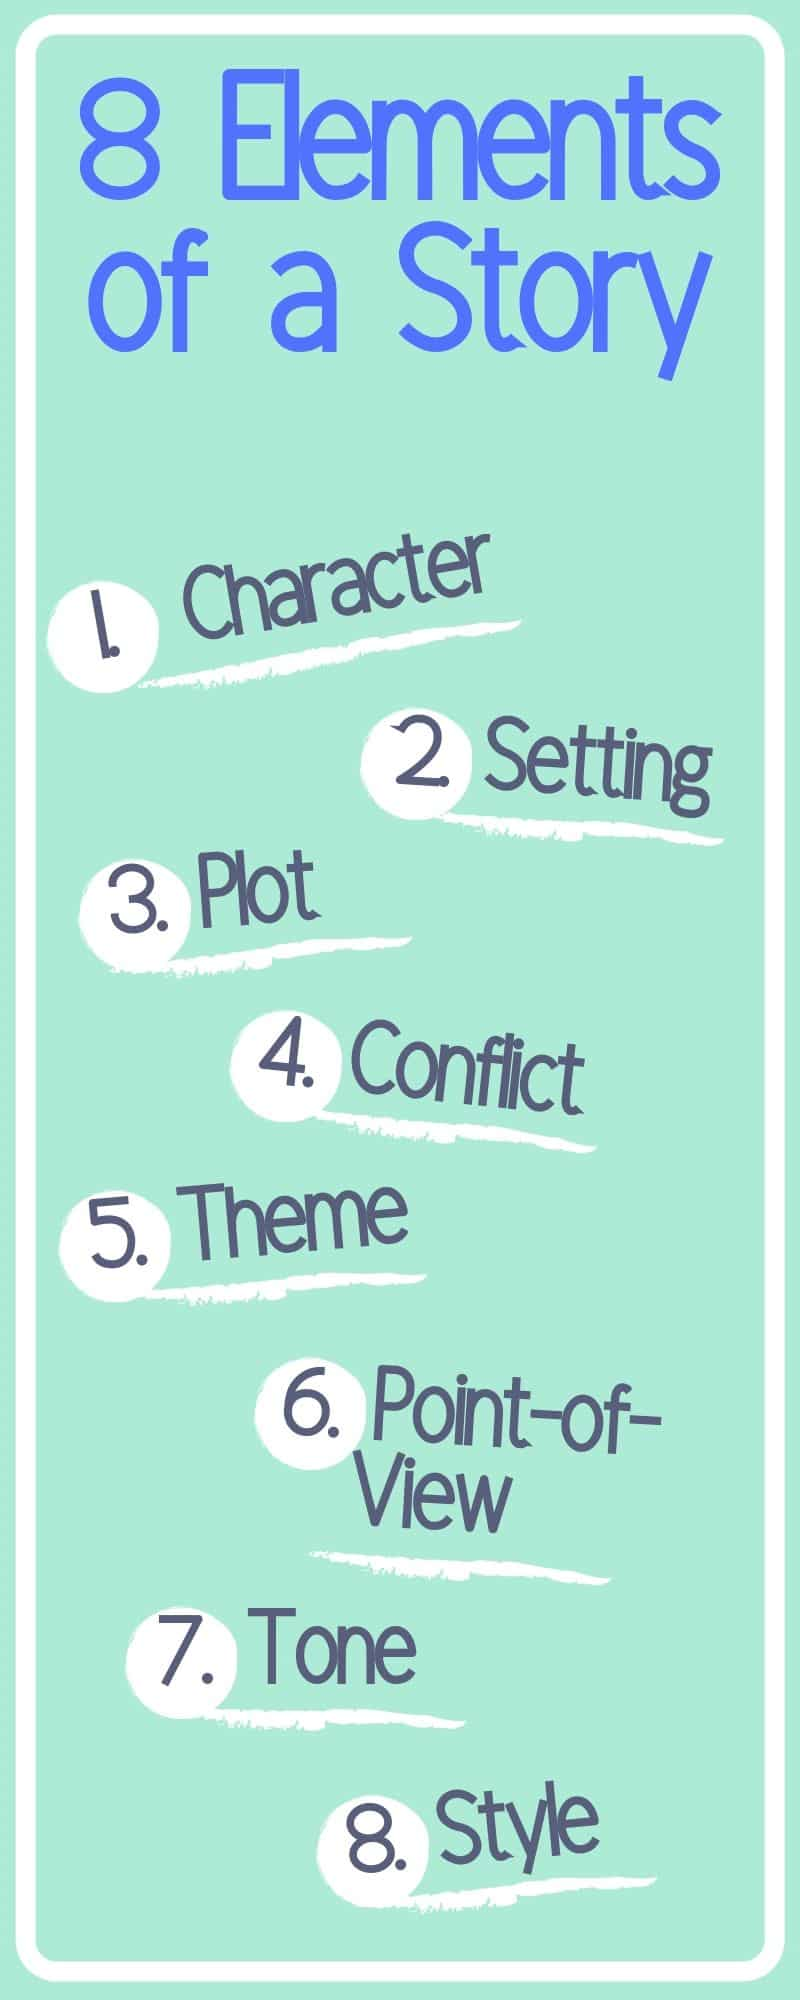 hight resolution of The 8 Elements of a Story - Explained for Students! (2021)